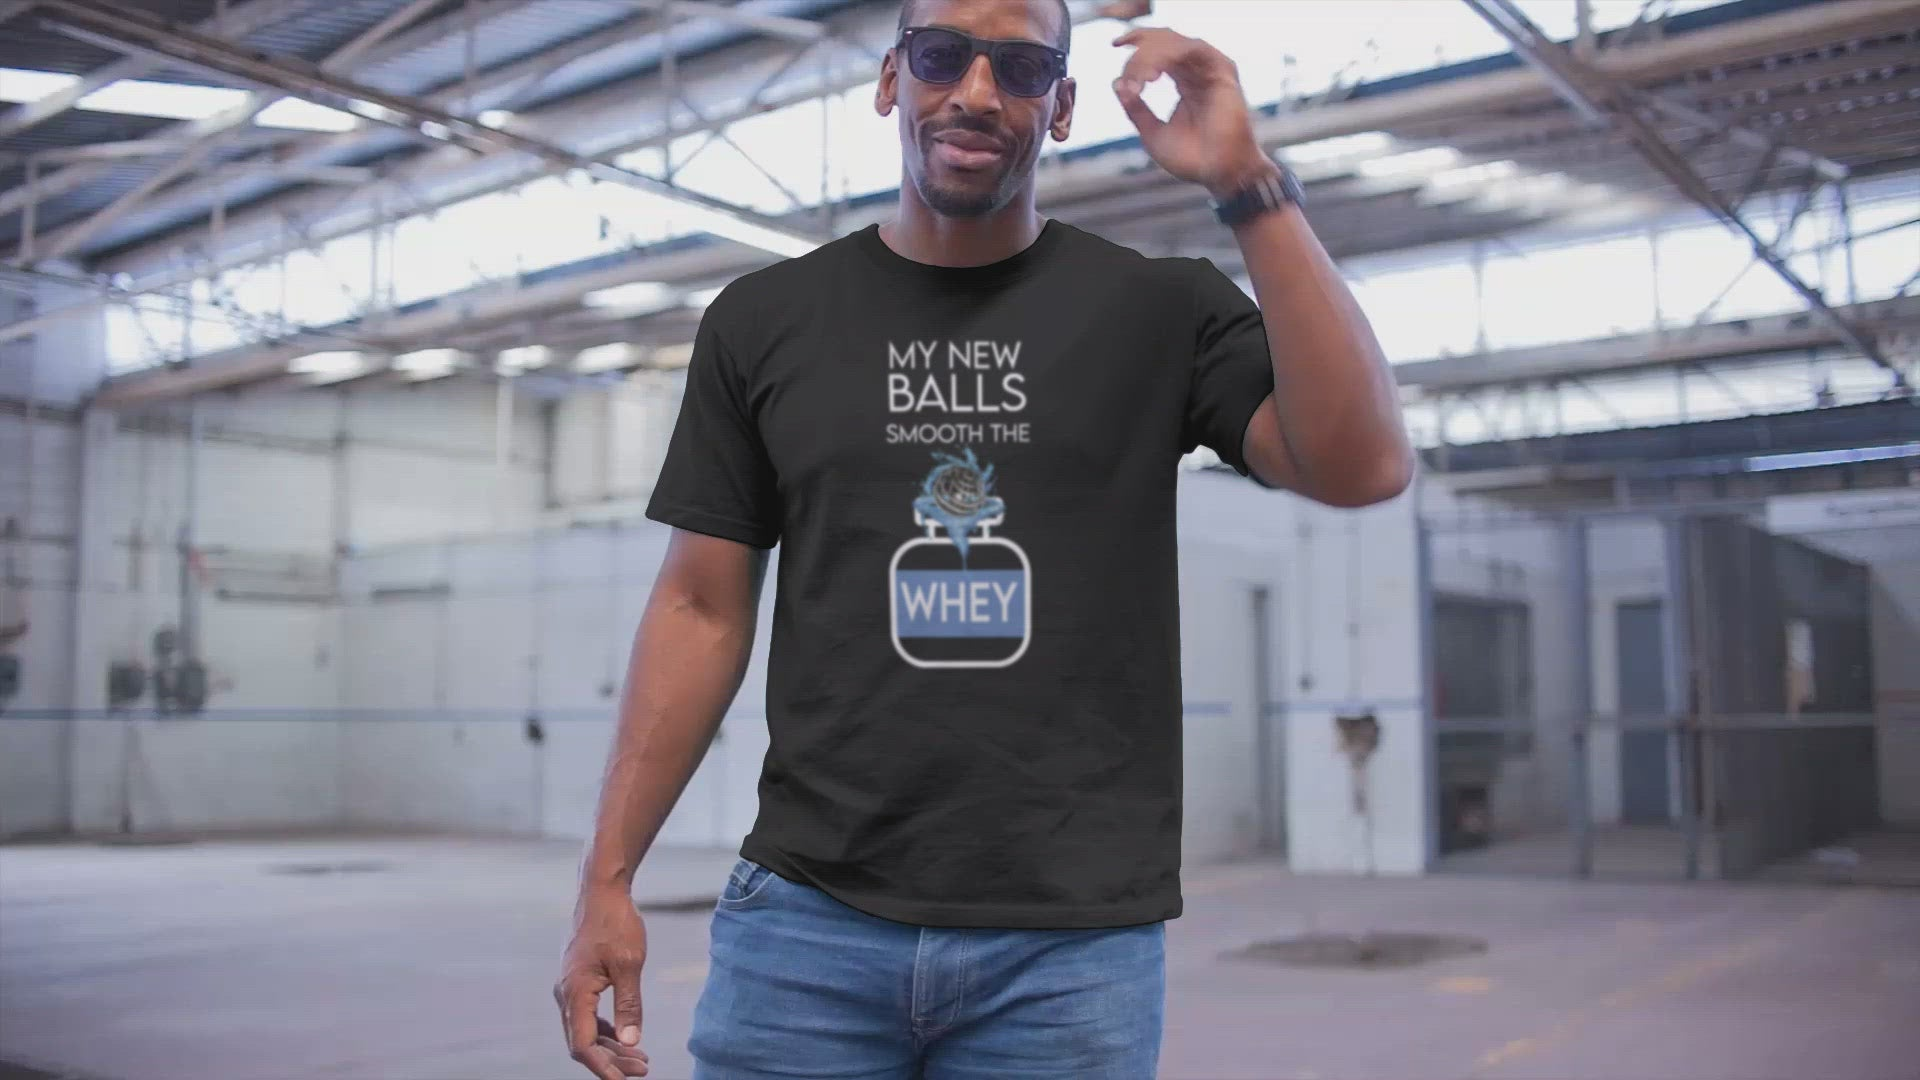 """MY NEW BALLS SMOOTH THE WHEY"" Unisex Classic Fit T-Shirt"